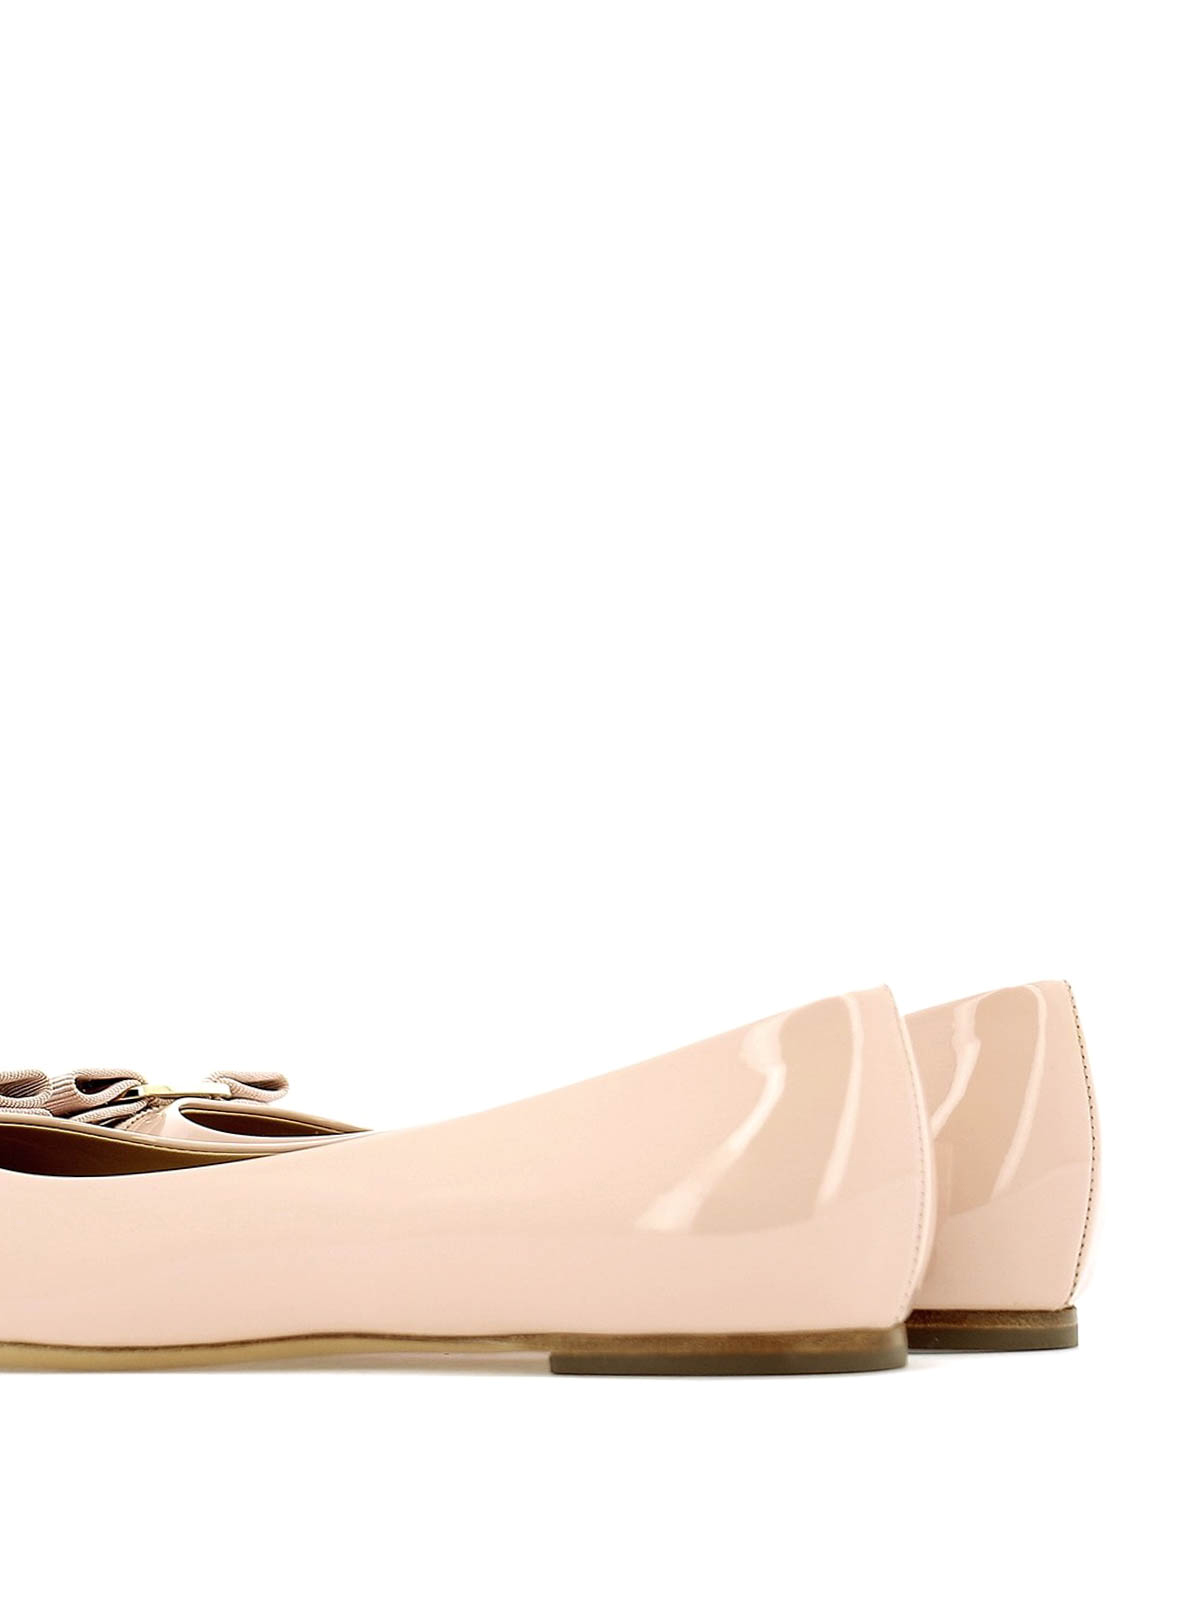 262ff82ec5ab8 iKRIX SALVATORE FERRAGAMO: flat shoes - Varina light pink patent leather  flat shoes